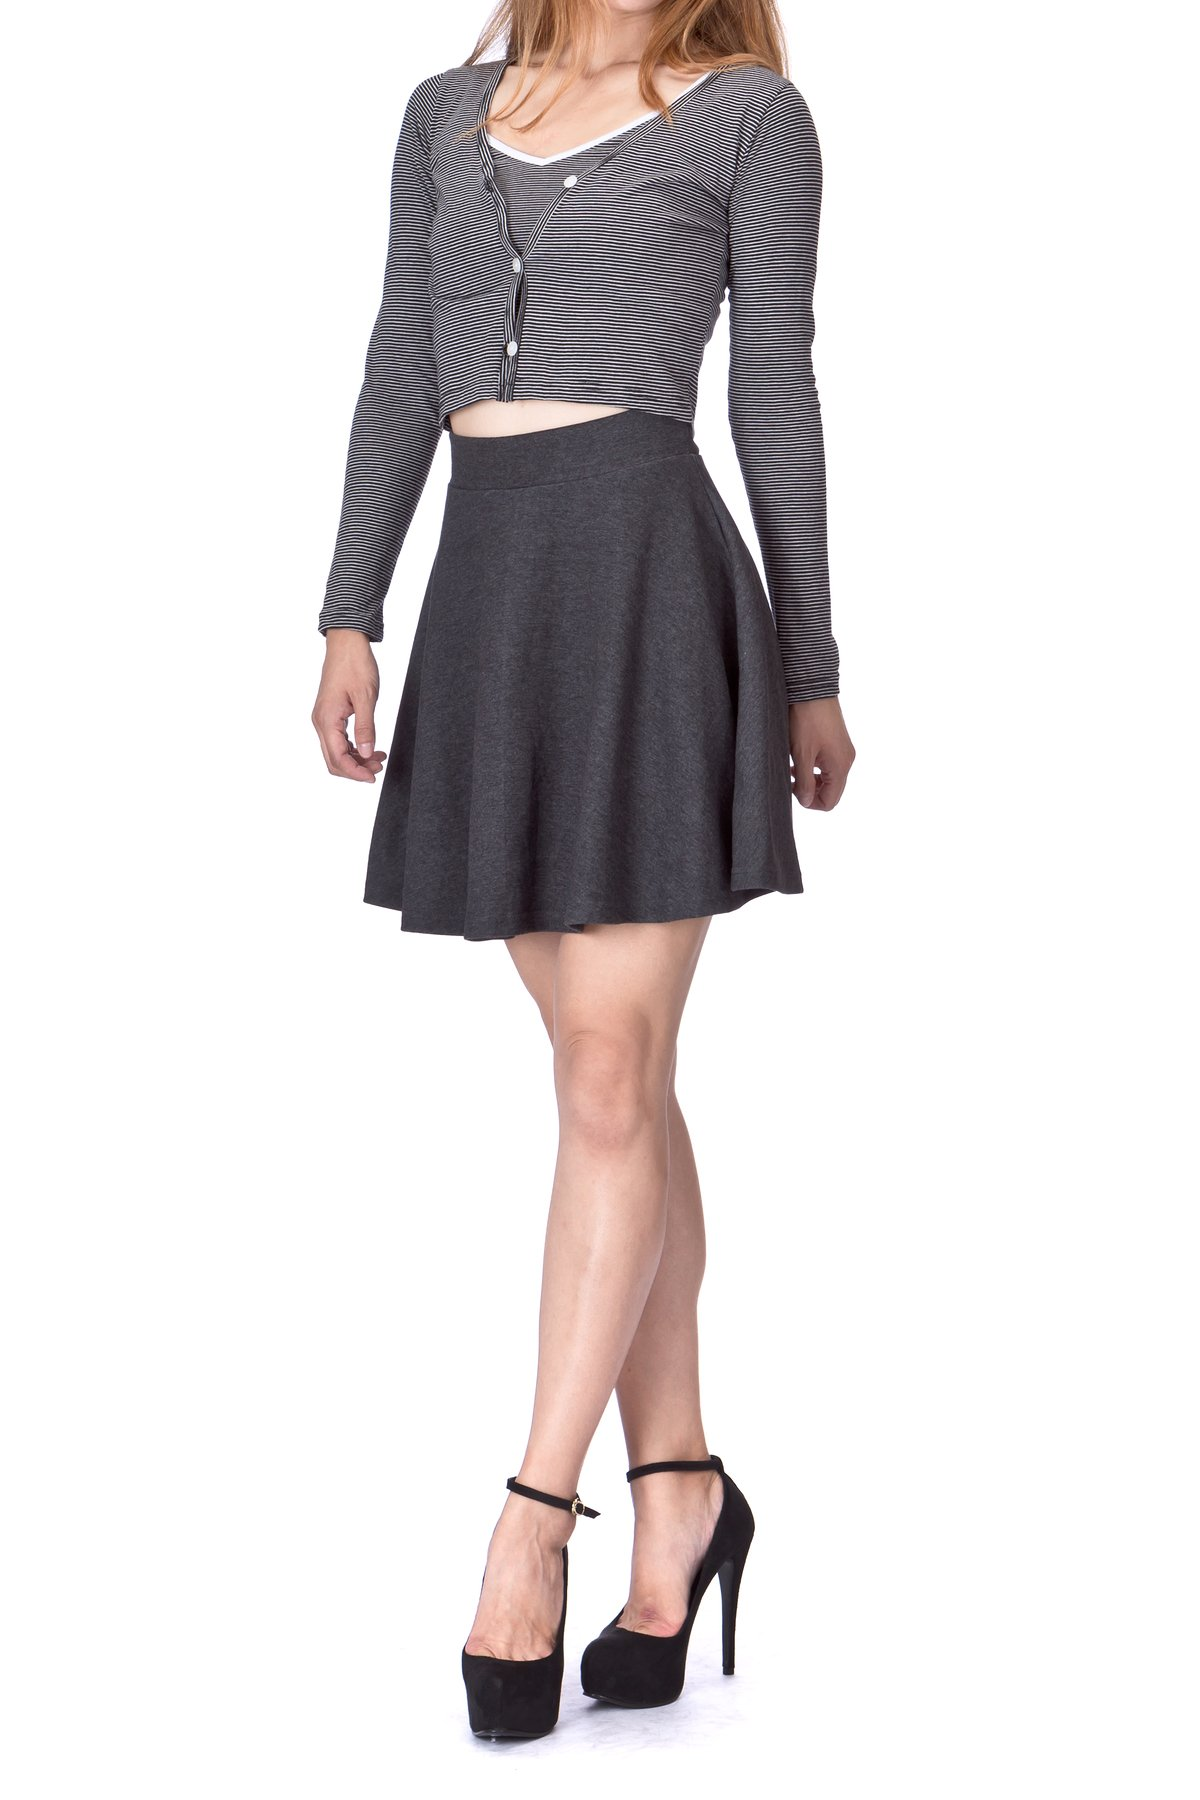 Basic Solid Stretchy Cotton High Waist A line Flared Skater Mini Skirt Charcoal 02 1